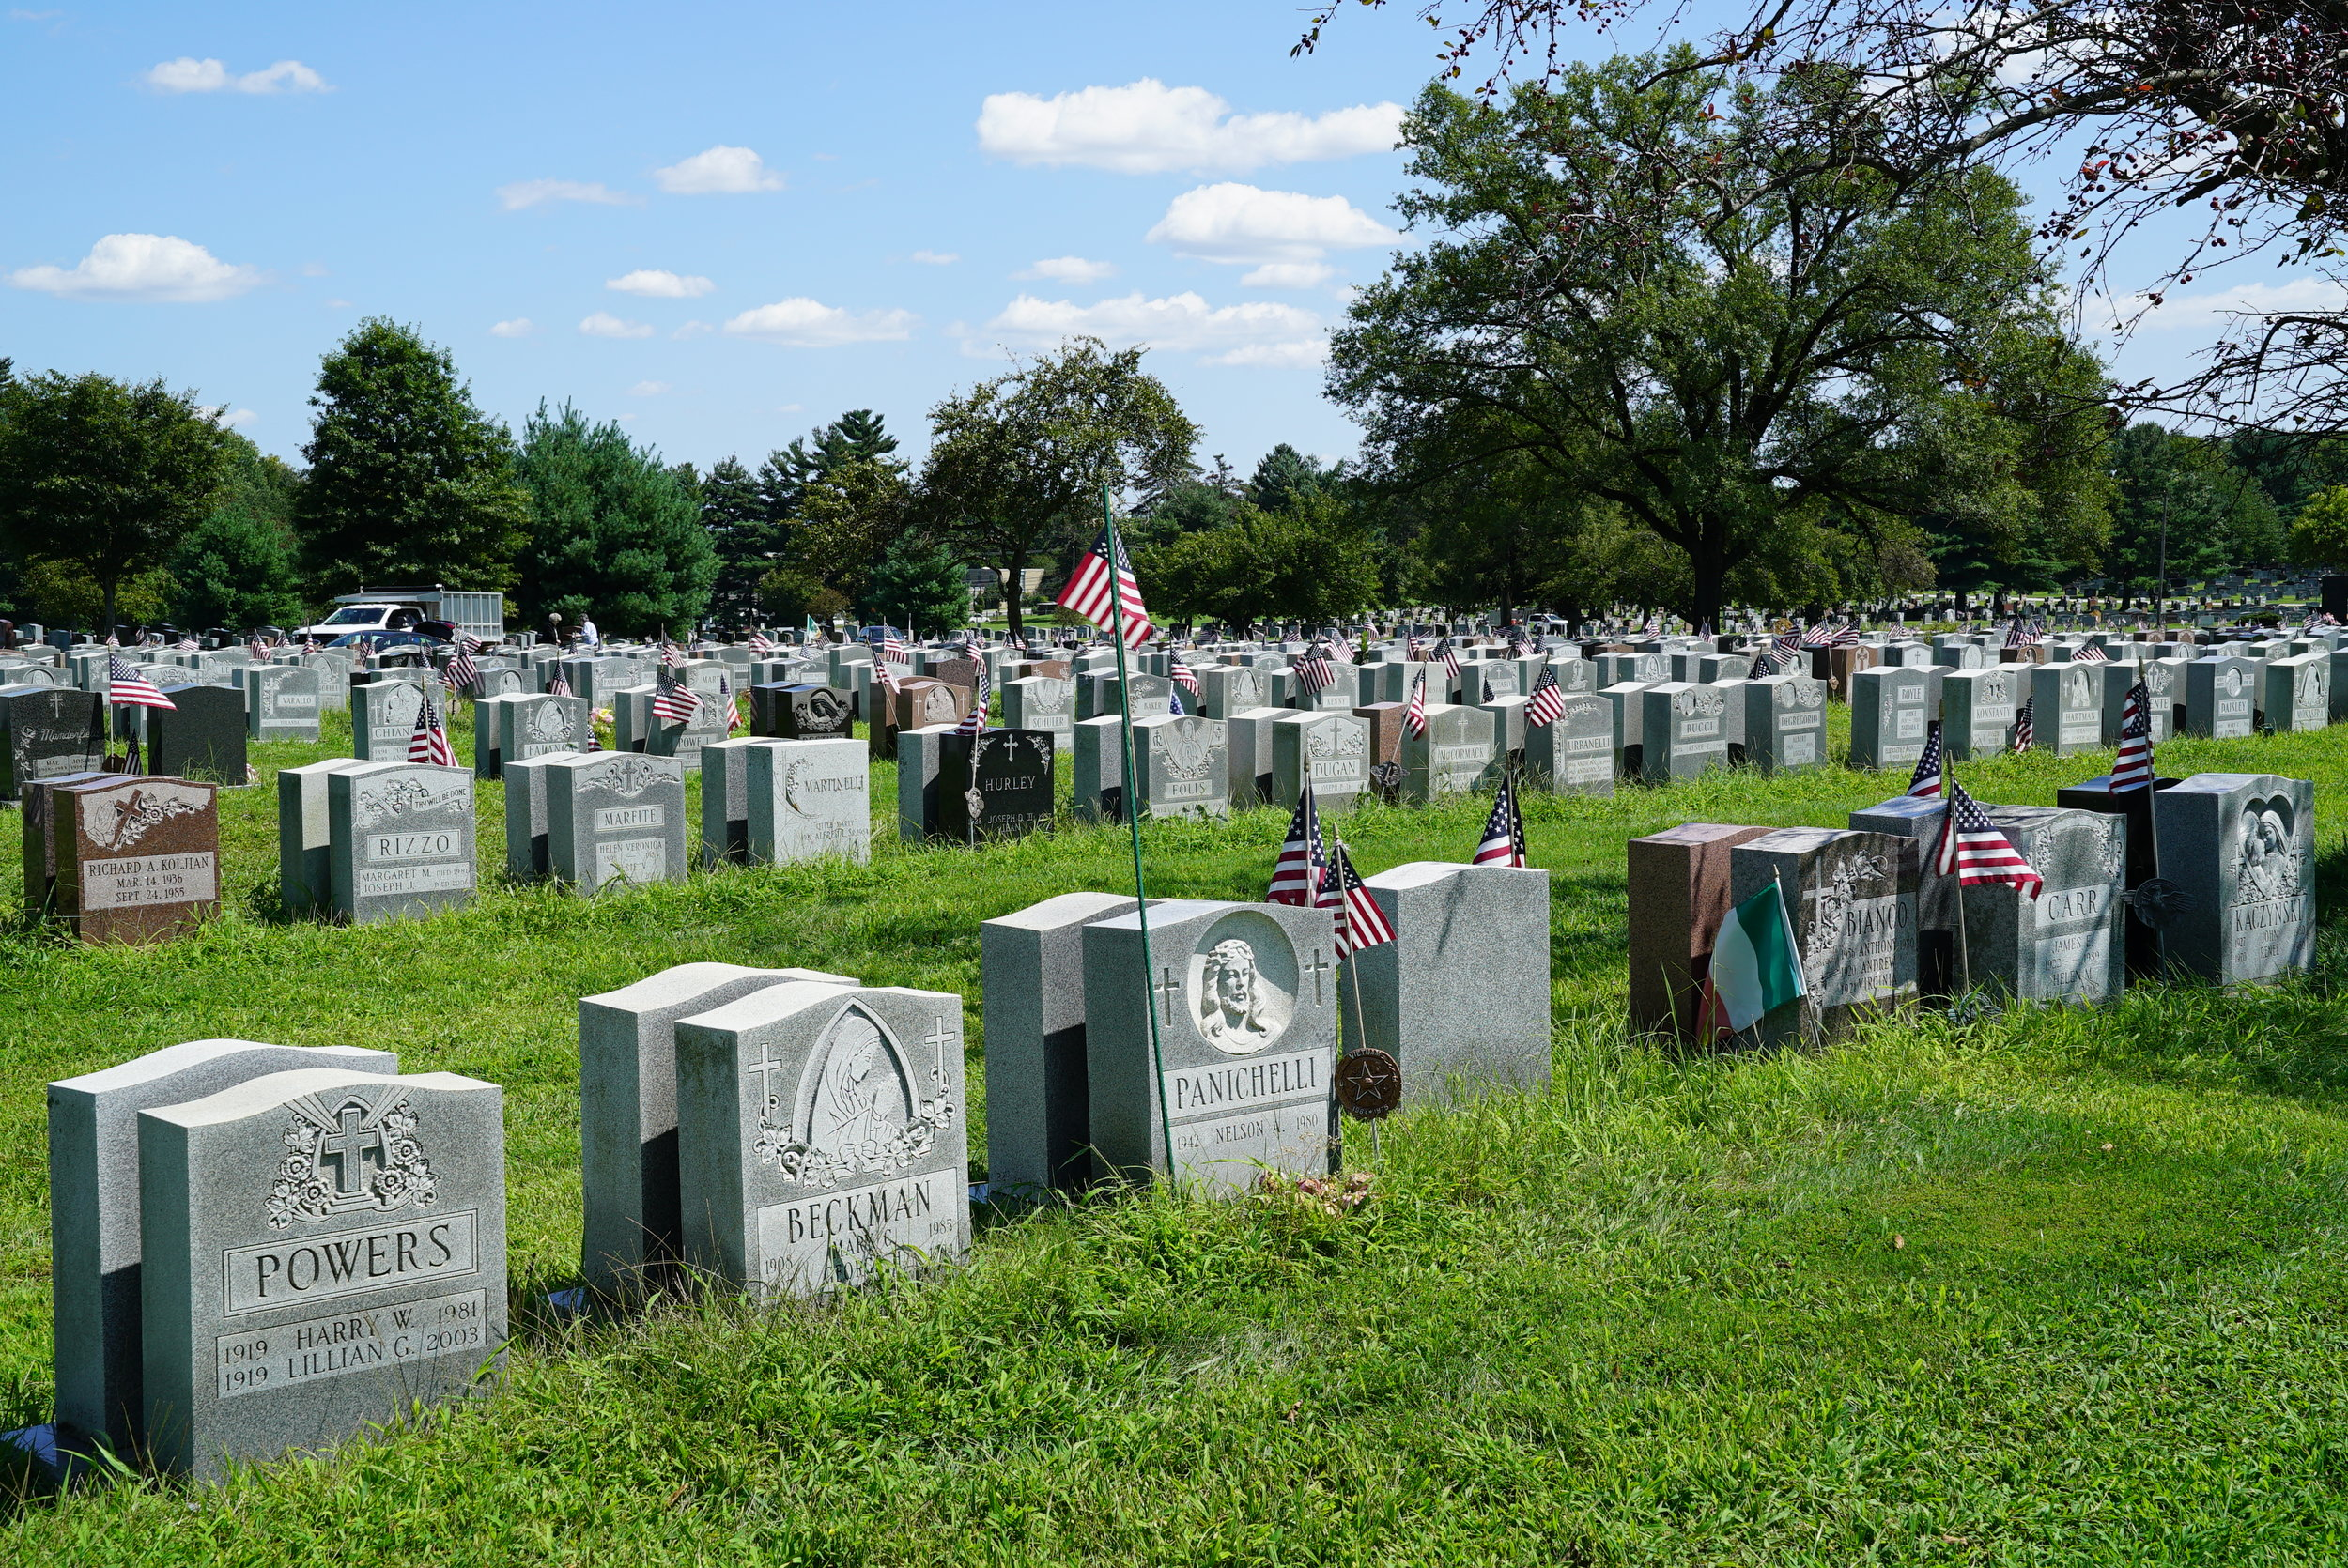 Saints Peter and Paul Cemetery - Springfield, Pennsylvania. August 23, 2018. The grounds maintenance standards have recently declined.